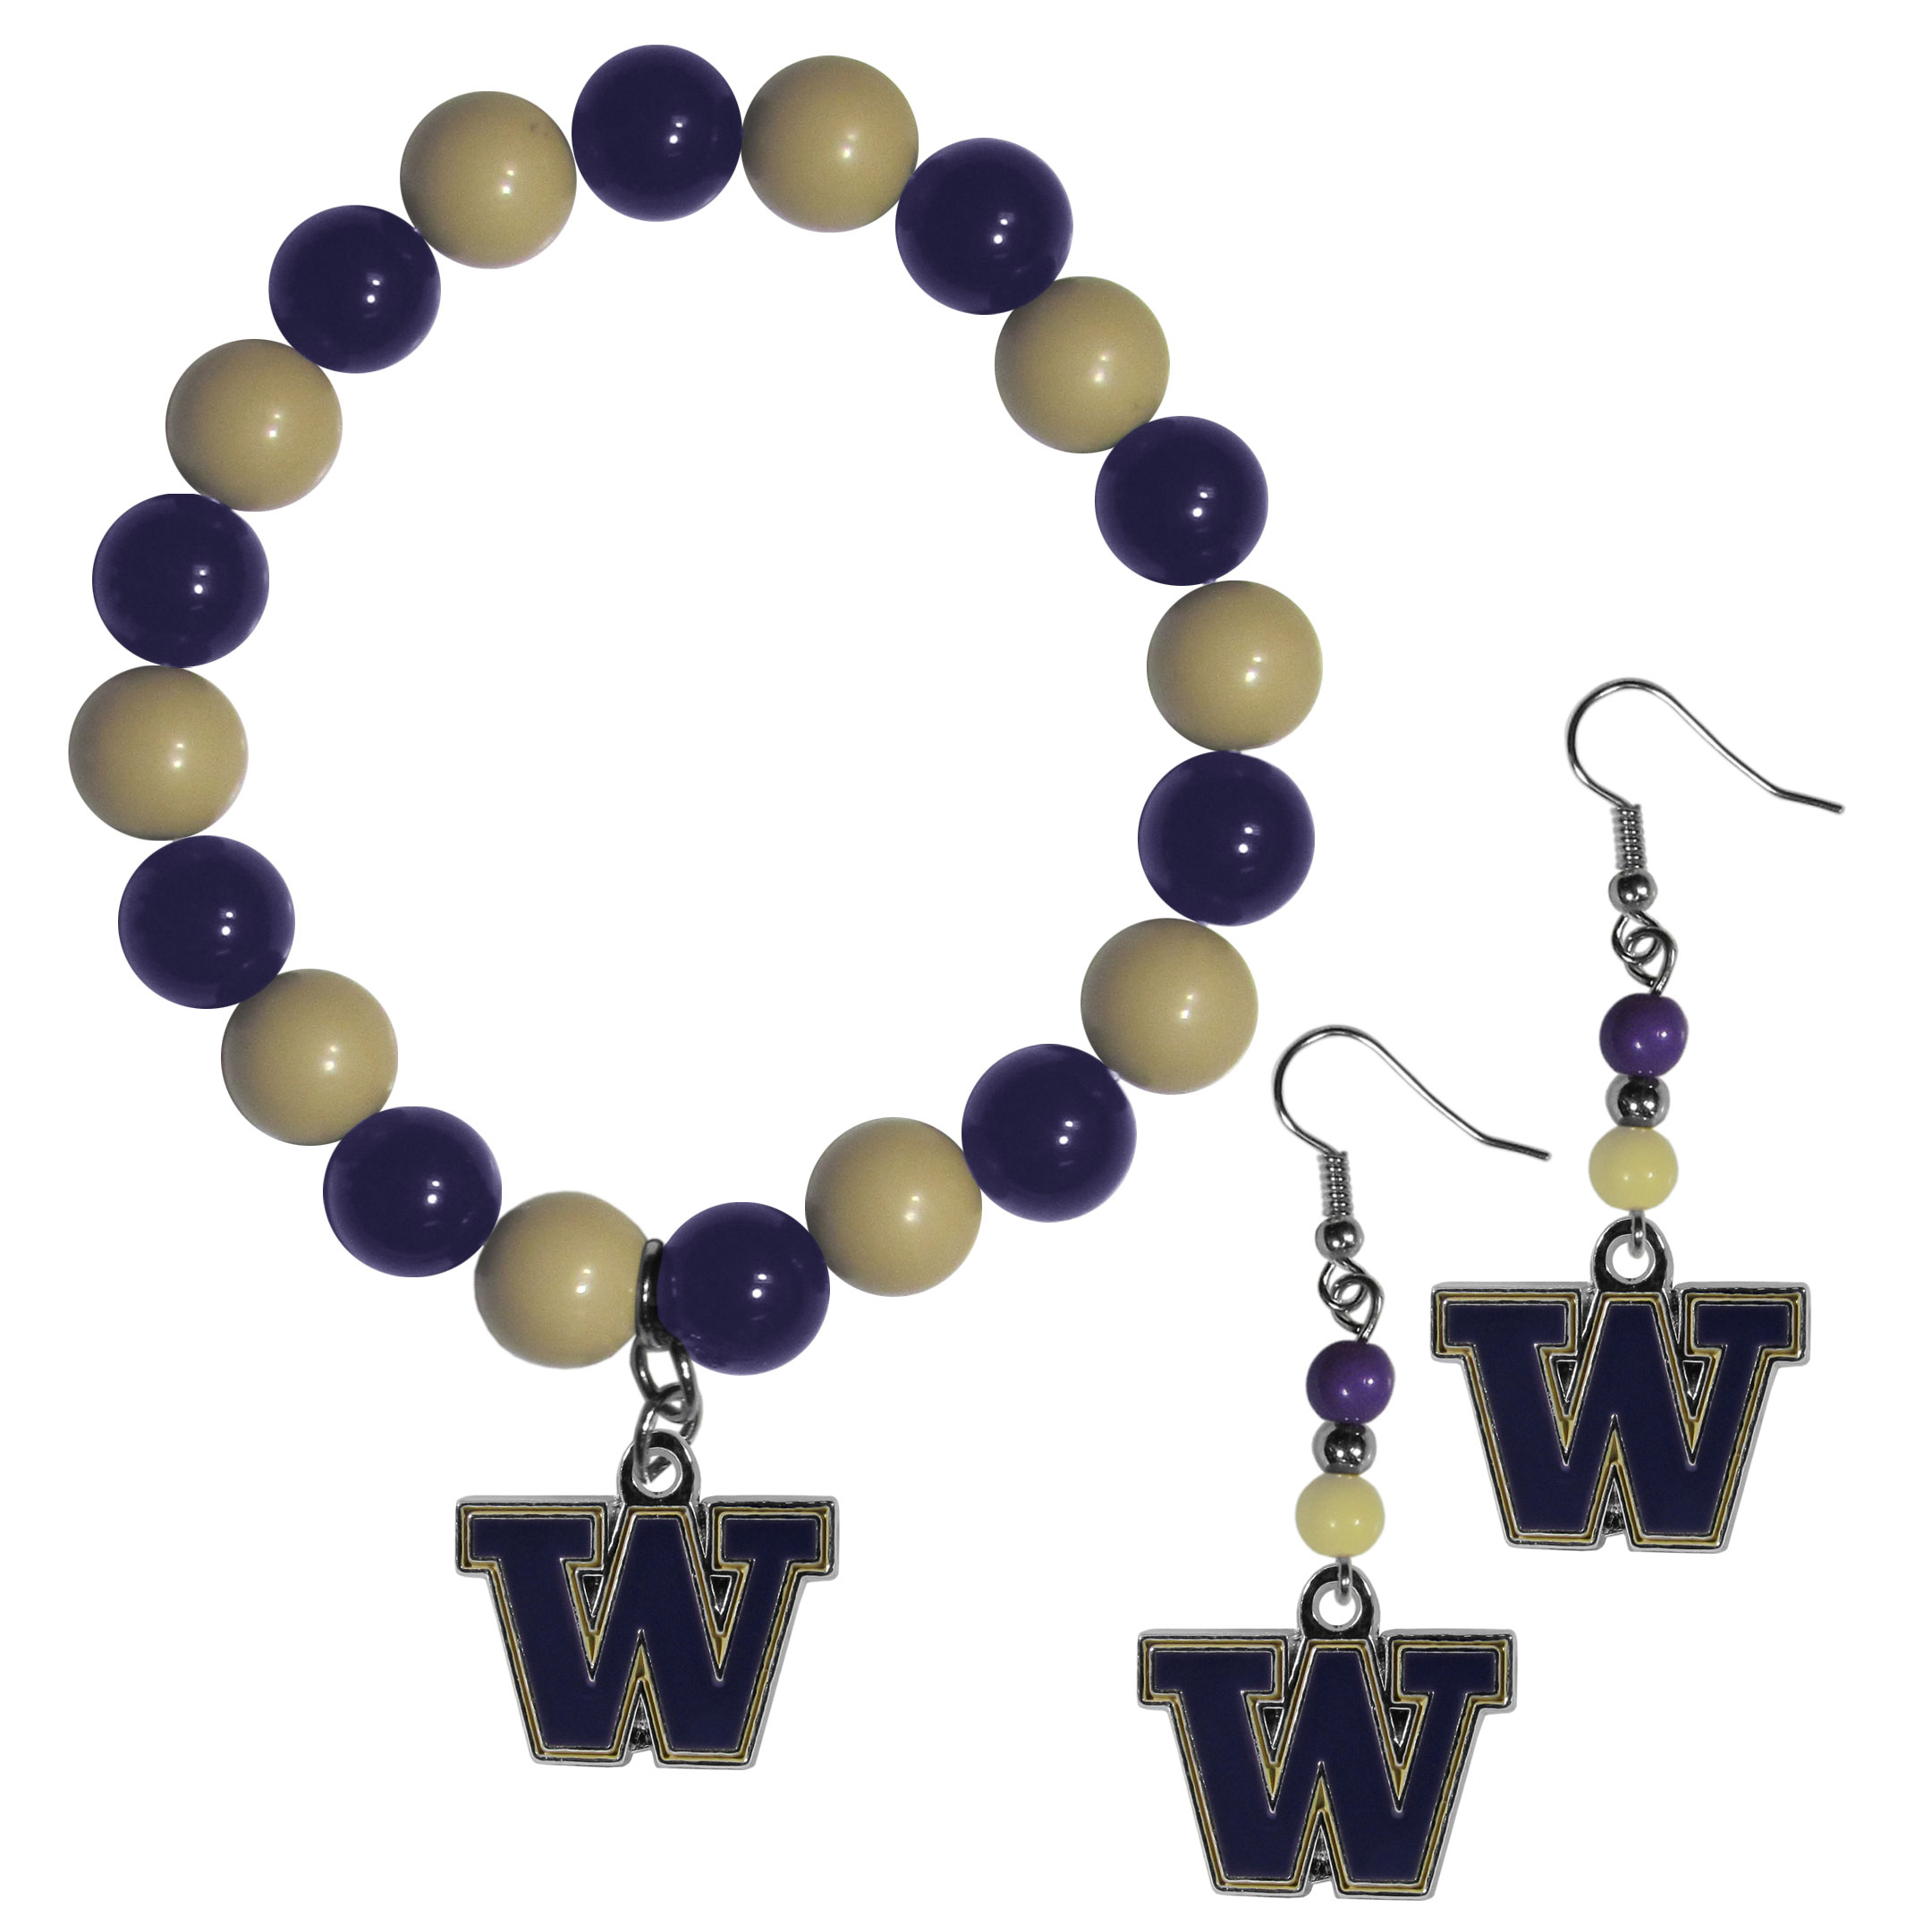 Washington Huskies Fan Bead Earrings and Bracelet Set - This fun and colorful Washington Huskies fan bead jewelry set is fun and casual with eye-catching beads in bright team colors. The fashionable dangle earrings feature a team colored beads that drop down to a carved and enameled charm. The stretch bracelet has larger matching beads that make a striking statement and have a matching team charm. These sassy yet sporty jewelry pieces make a perfect gift for any female fan. Spice up your game-day outfit with these fun colorful earrings and bracelet that are also cute enough for any day.